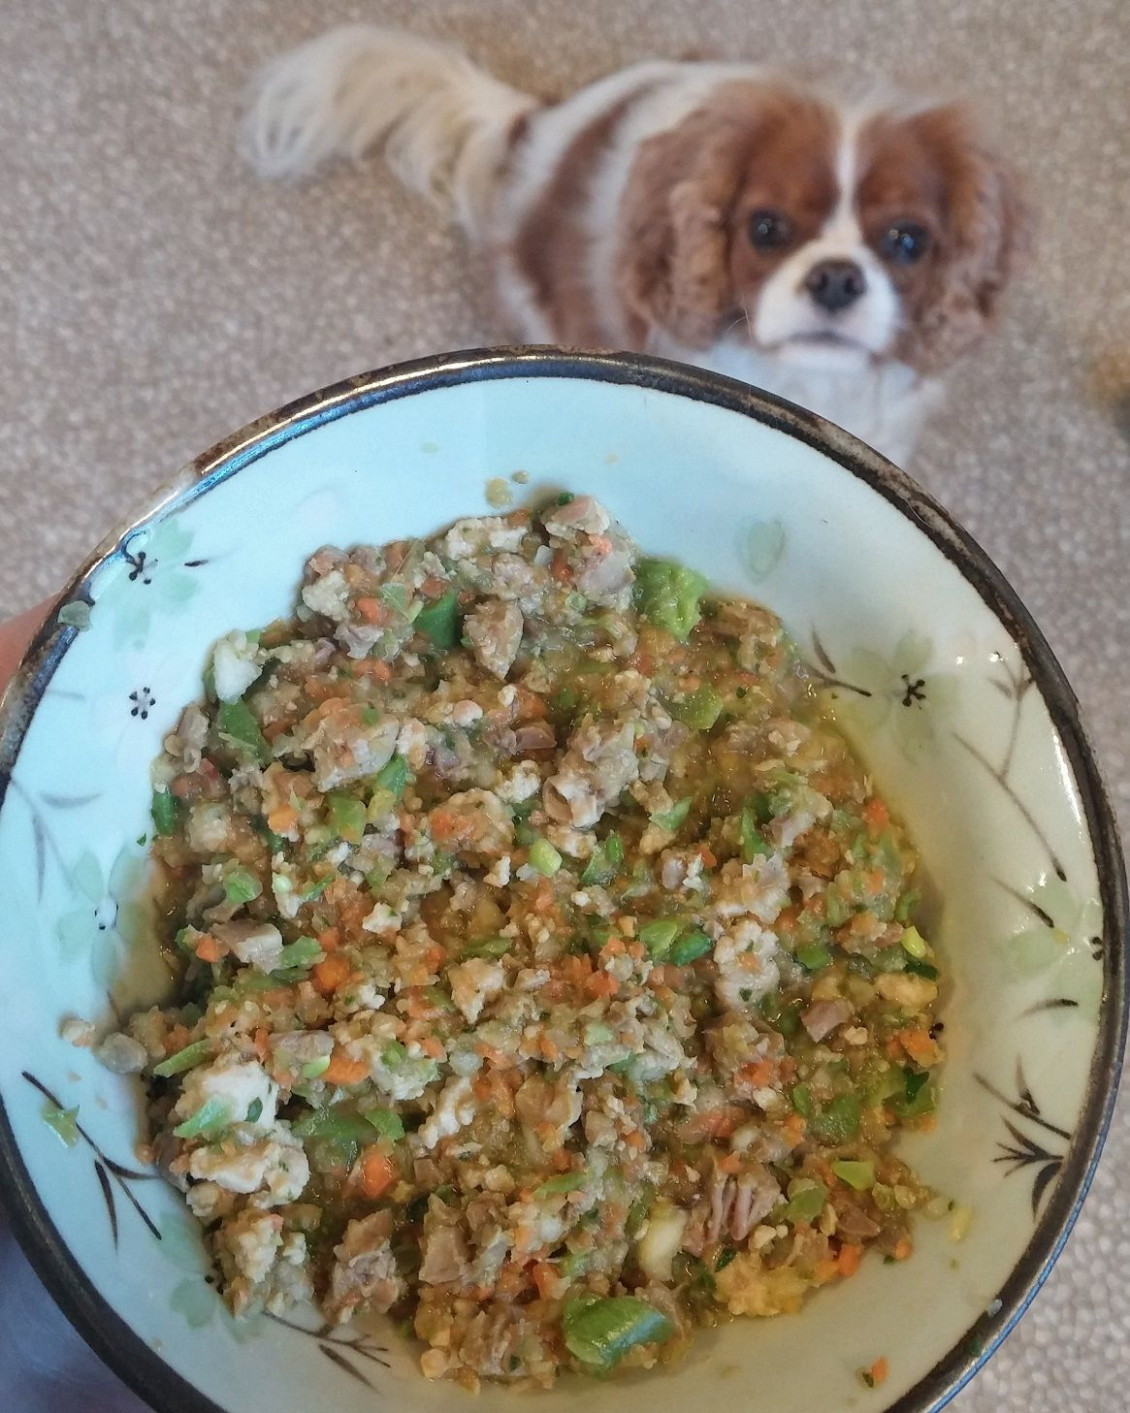 Homemade dog food chicken and heart recipe - All recipes UK - recipes diabetic dog food